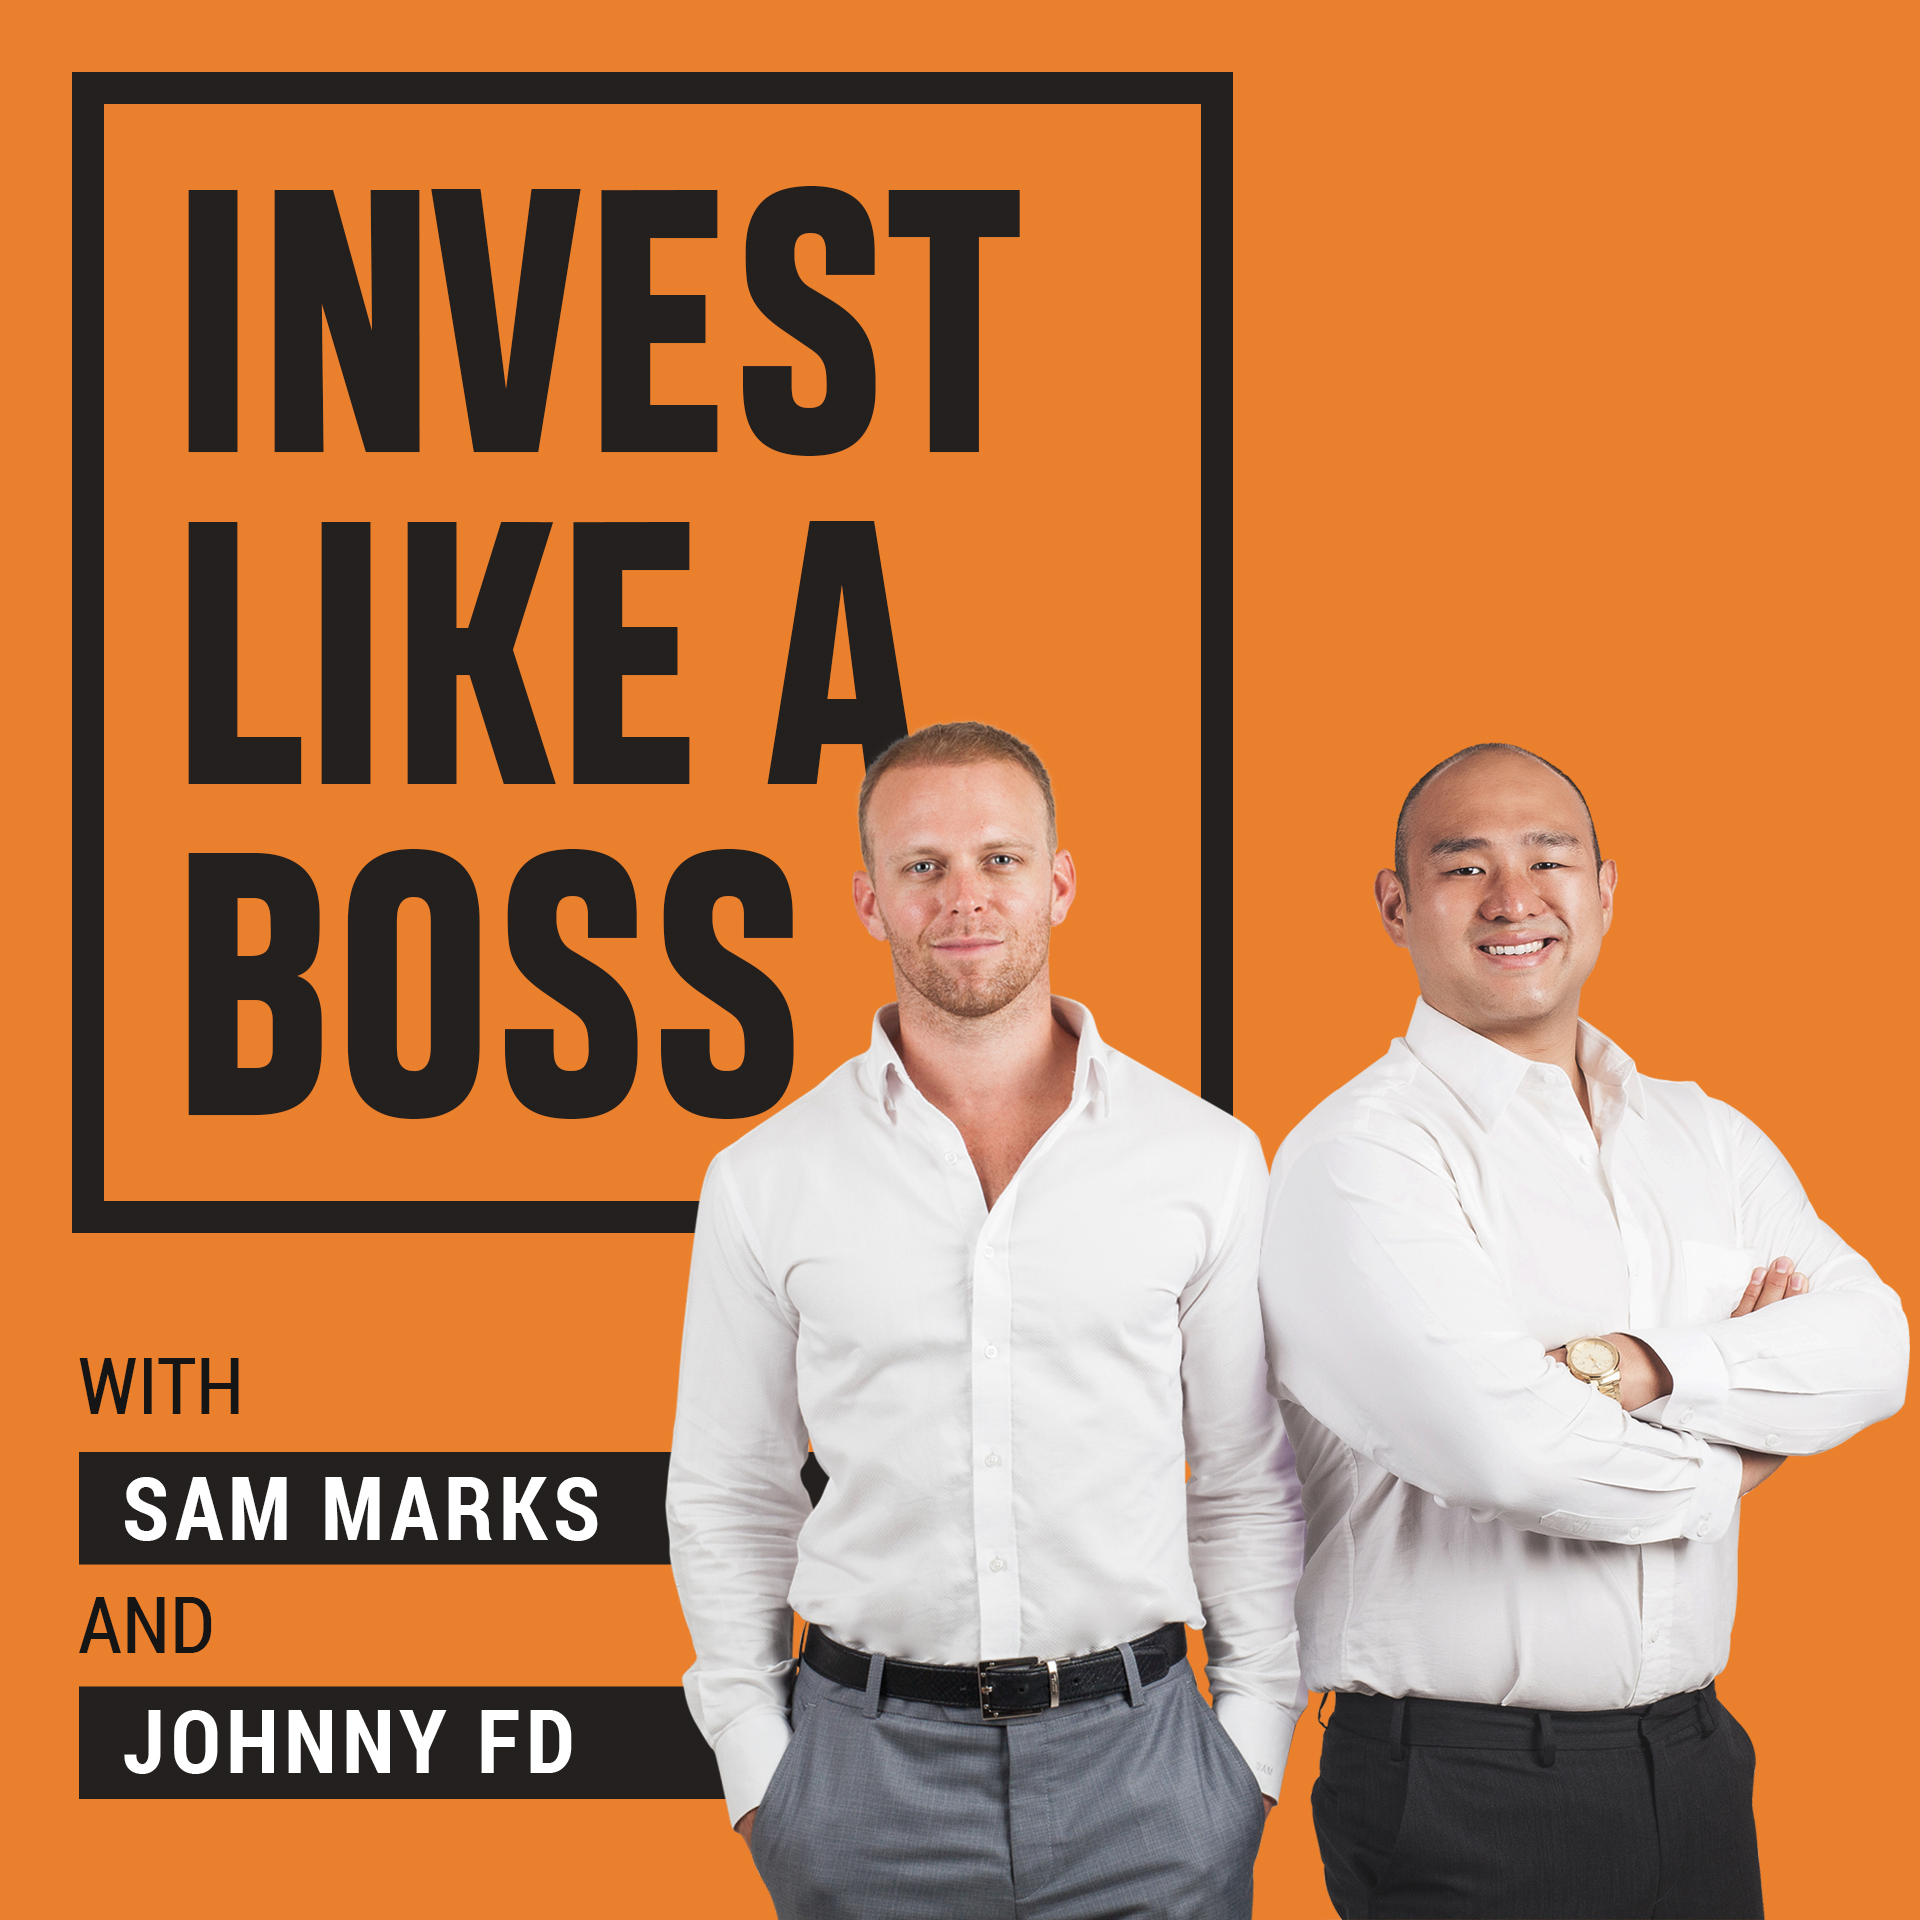 Invest Like a Boss podcast logo, best of investing podcasts lists